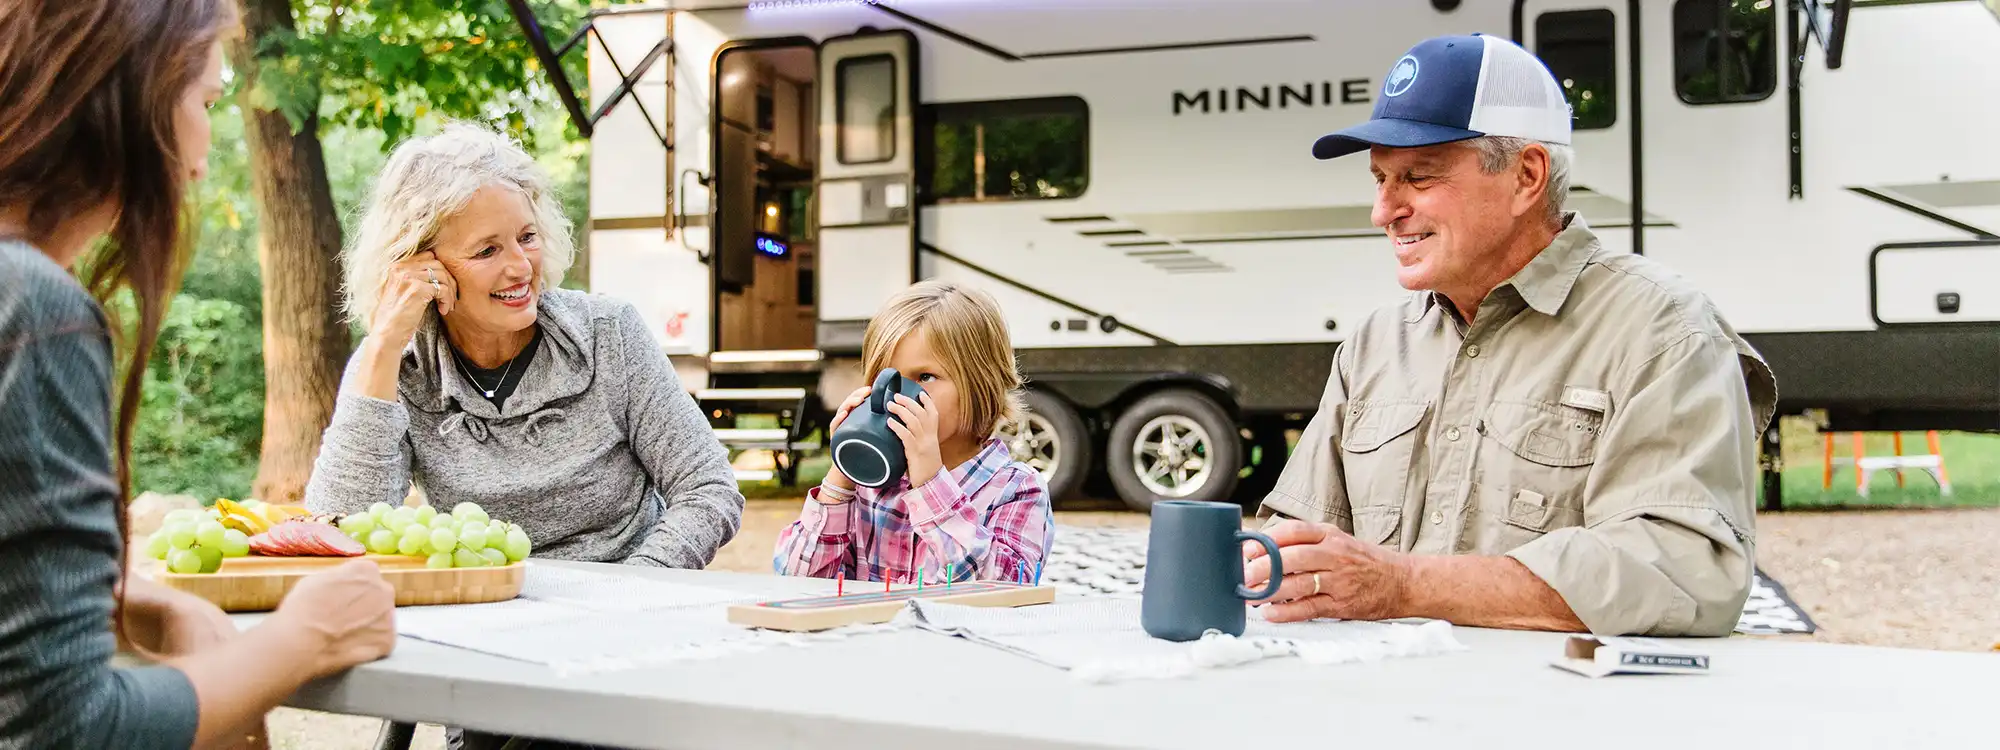 best winnebago campers family eating outside